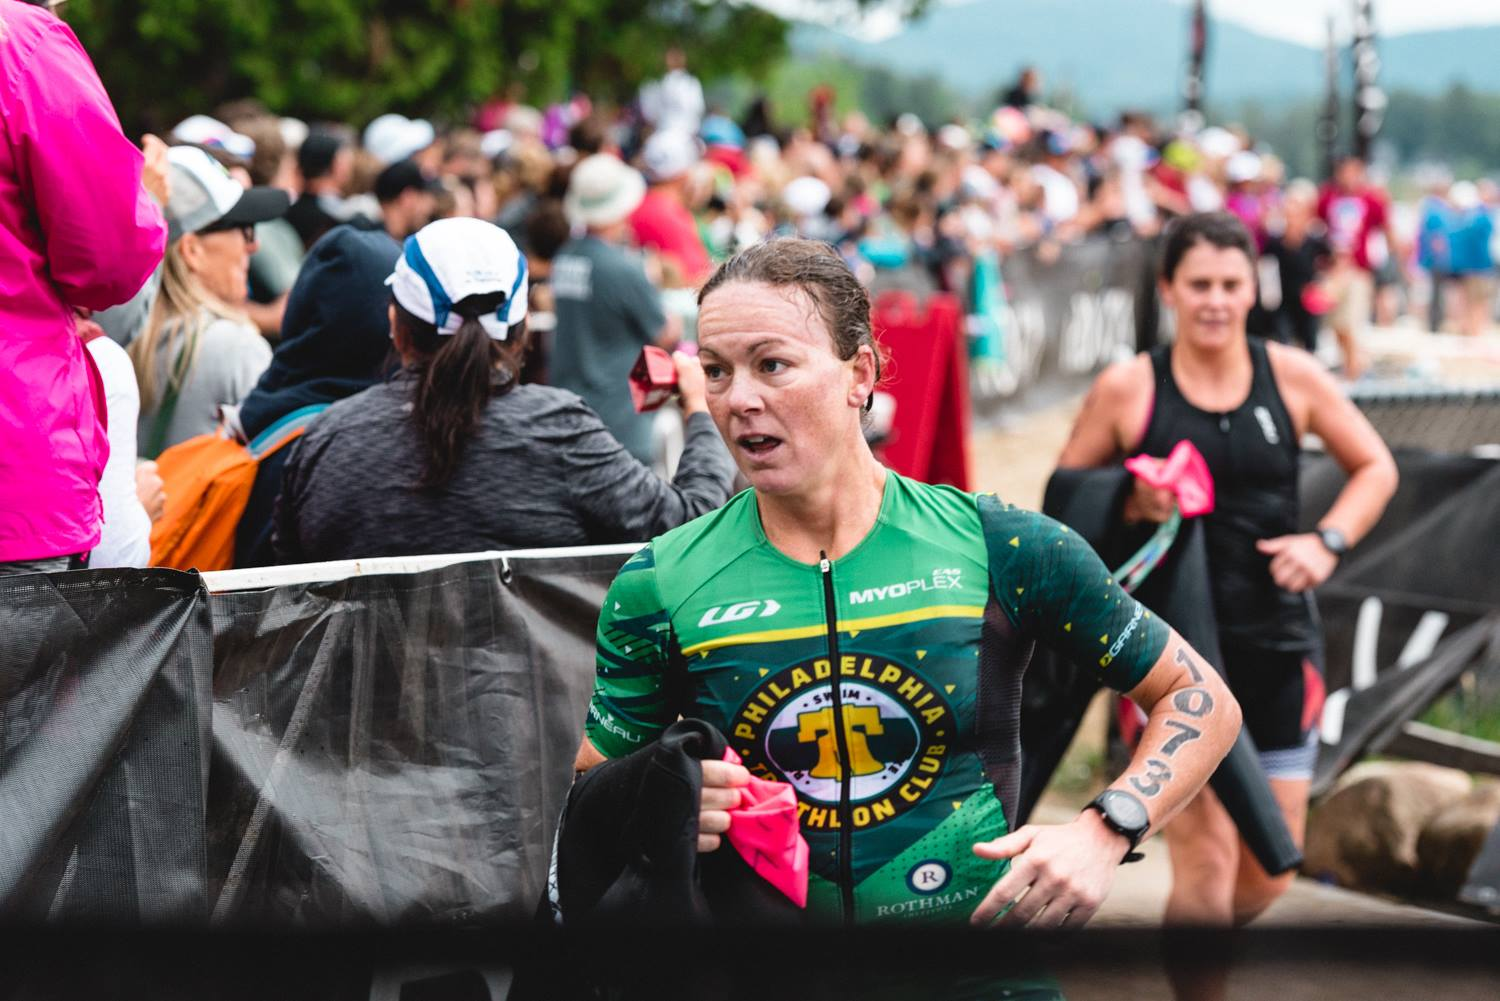 Coach_Terry_Wilson_Pursuit_of_The_Perfect_Race_IRONMAN_Lake_Placid_Kathleen_Murray_Swim_Out.jpg